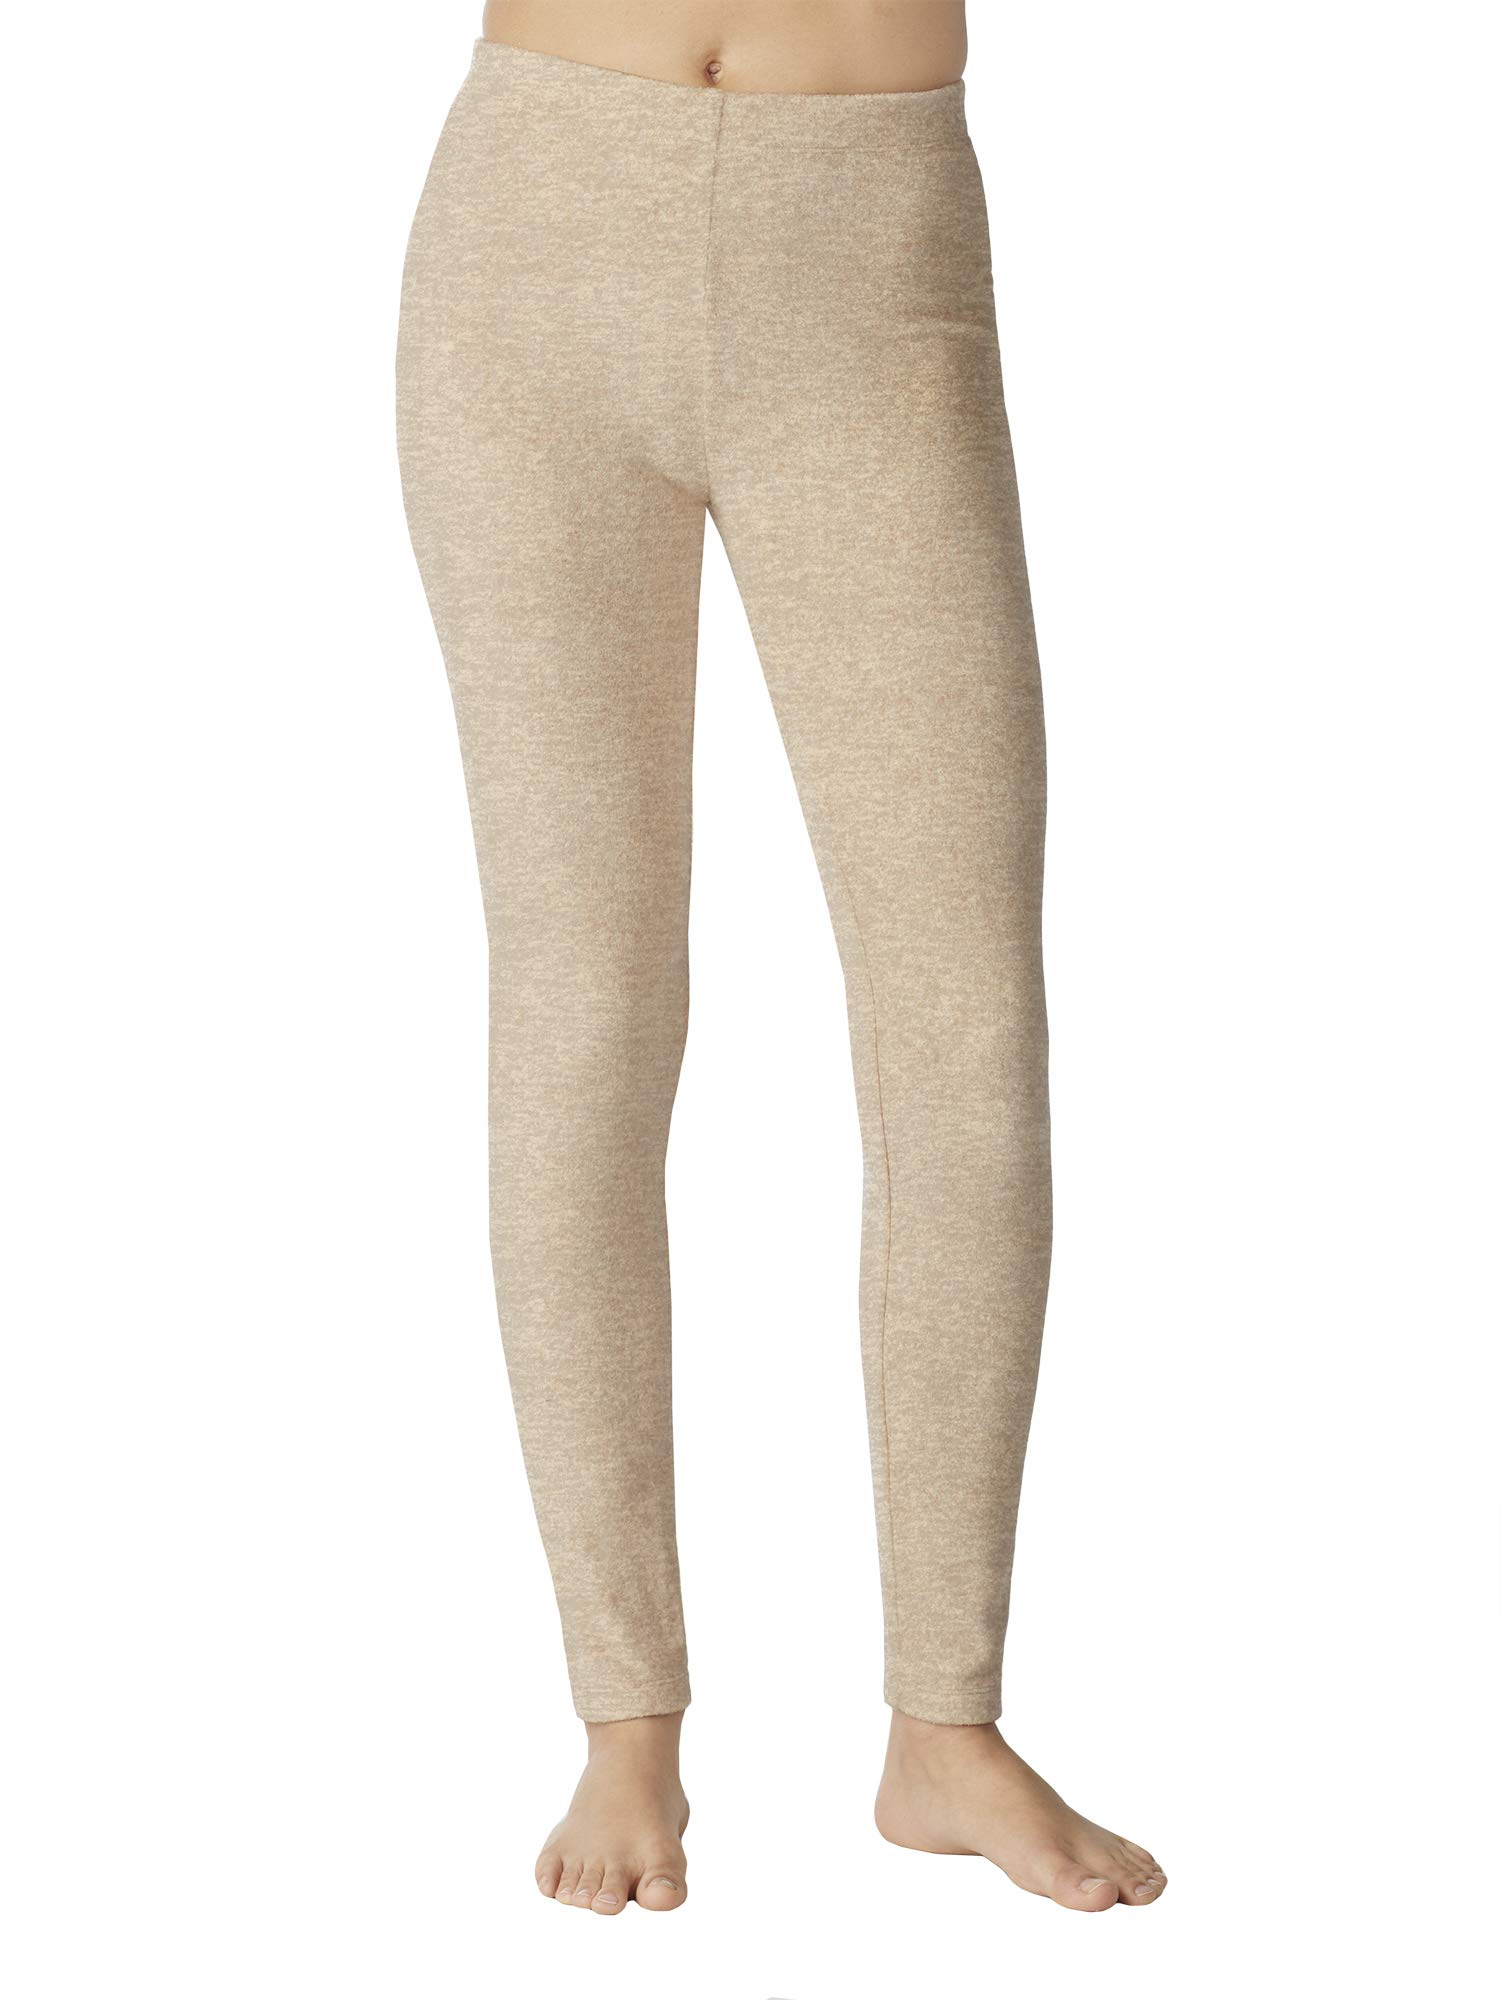 Cuddl Duds ClimateRight Women's Stretch Fleece Warm Underwear Leggings (4X-Large - Oatmeal) by Cuddl Duds